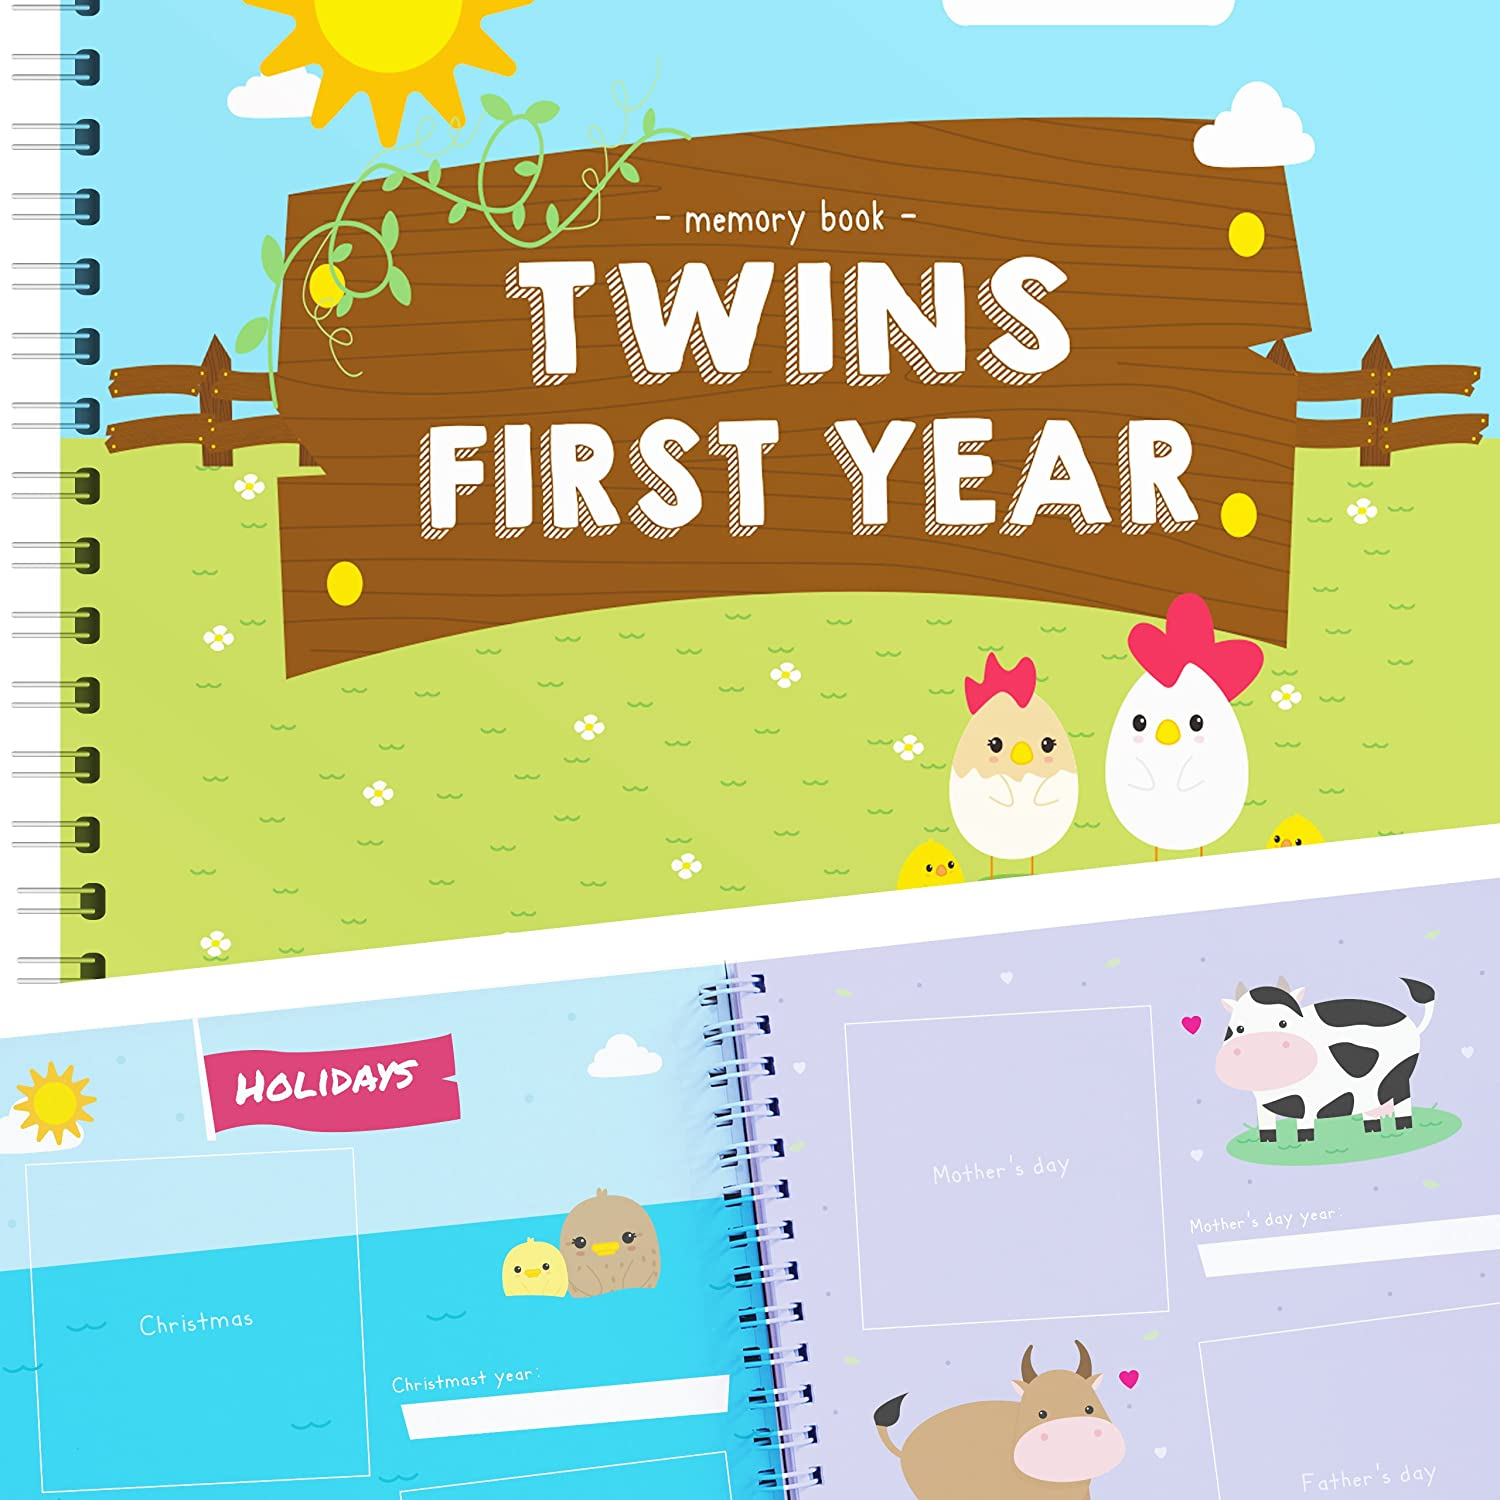 Newborn Twins by Unconditional Rosie - A Beautiful Baby Memory Book for Documenting Your Twin Baby's First Year! Perfect Gift for Moms Having Two Babies! Gorgeous Baby Twin Gifts - Farm Edition TWINSFARMSINGLE